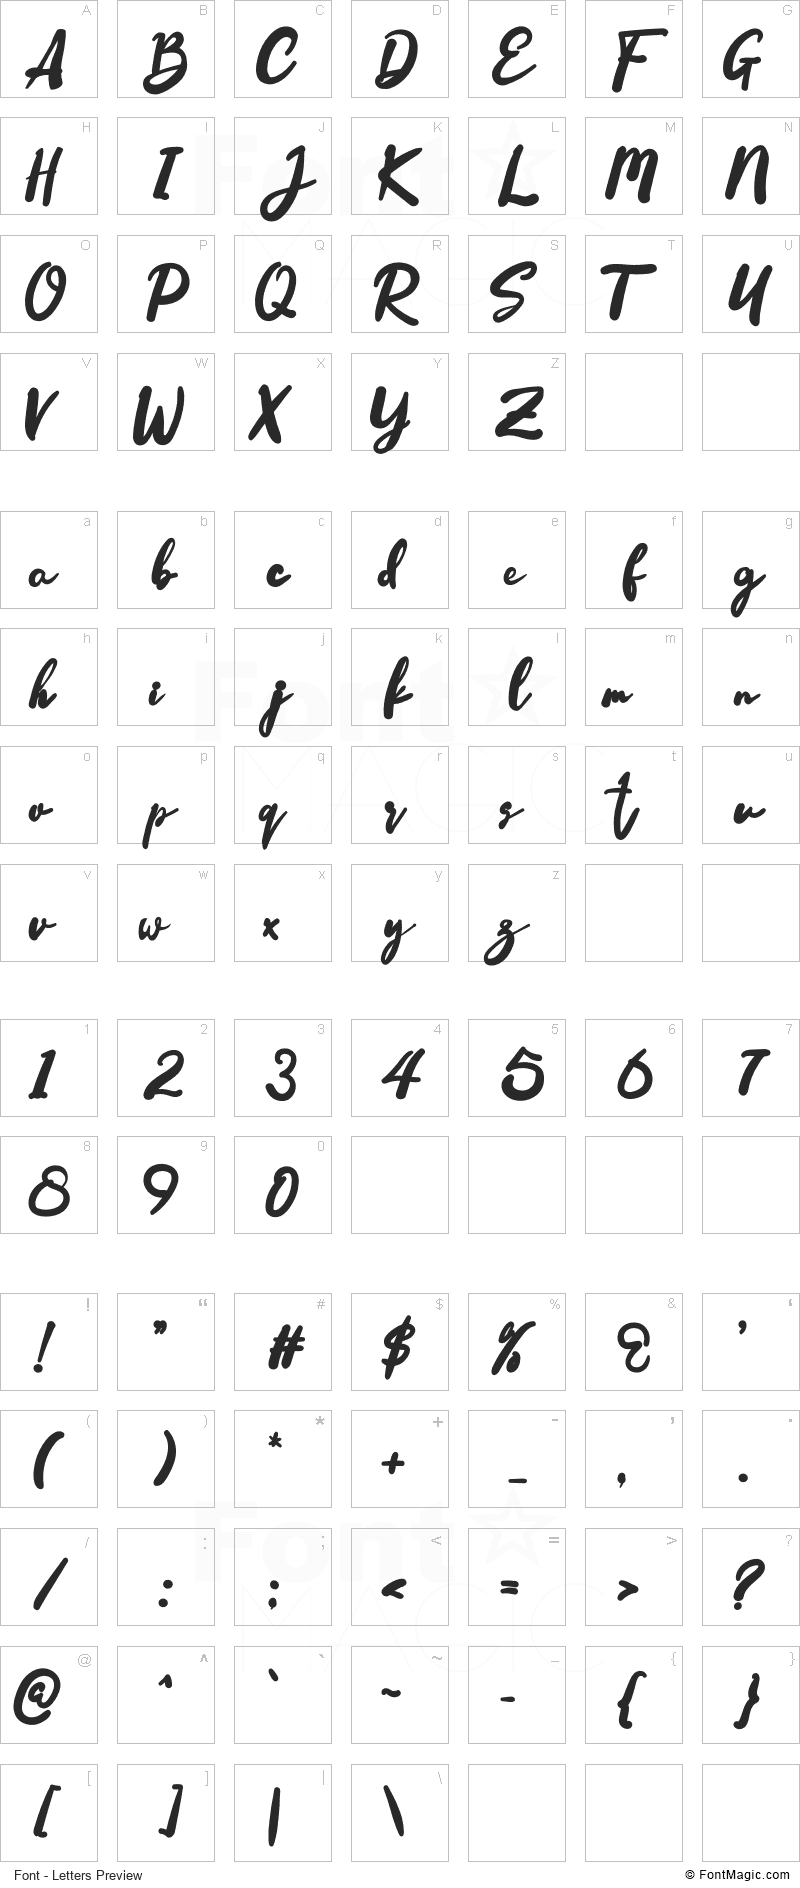 Happiness Font - All Latters Preview Chart